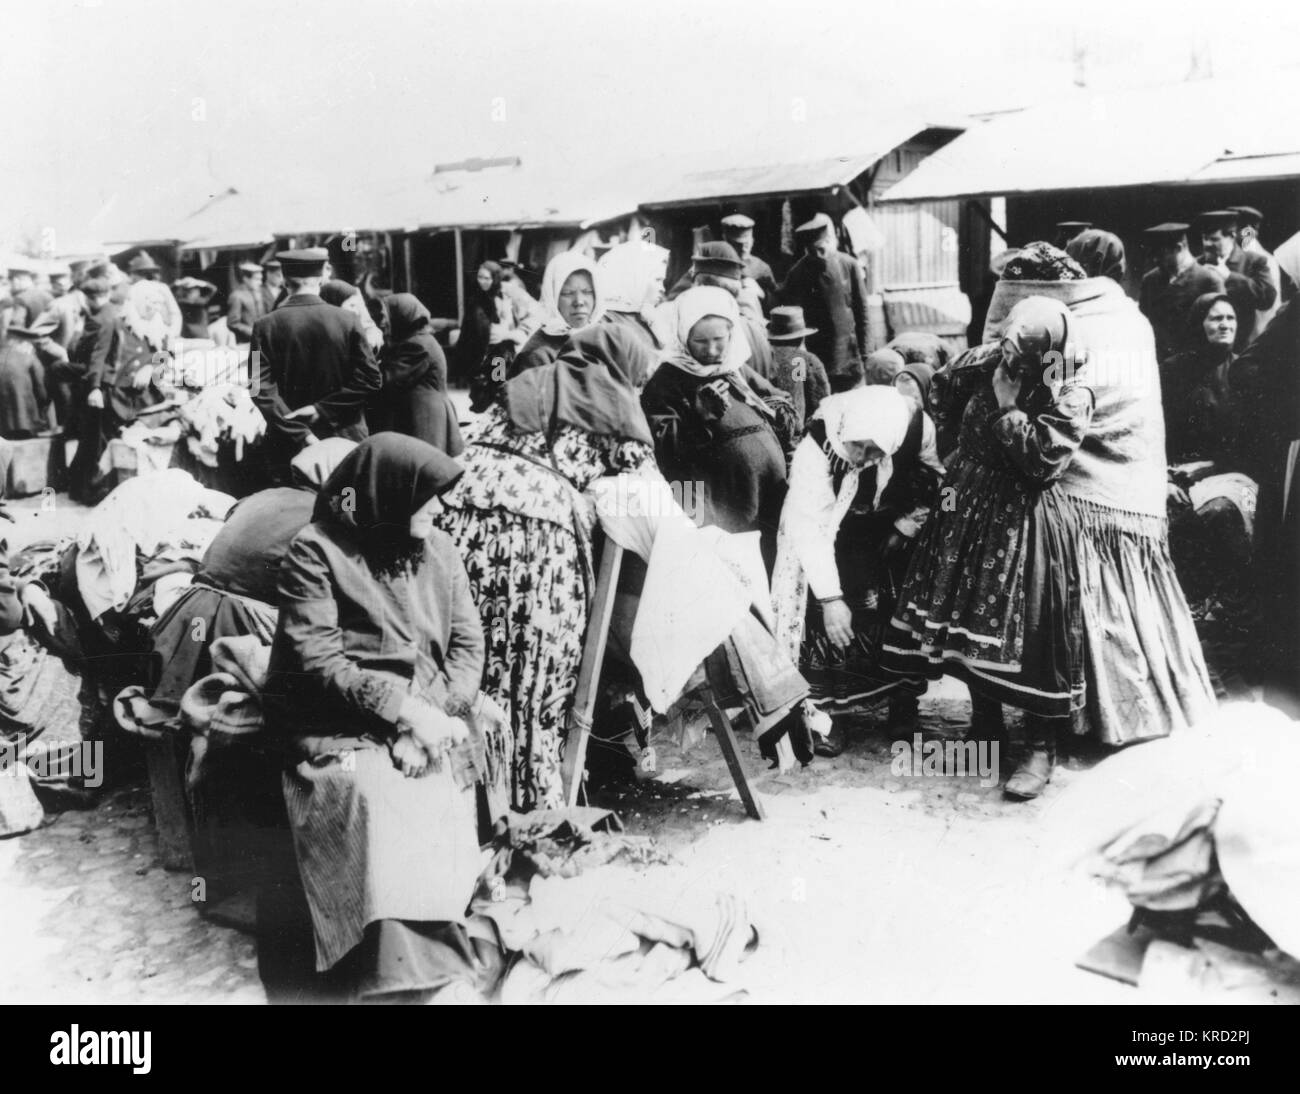 A Moscow clothes stall from around the turn of the 20th century.      Date: circa 1900 - Stock Image